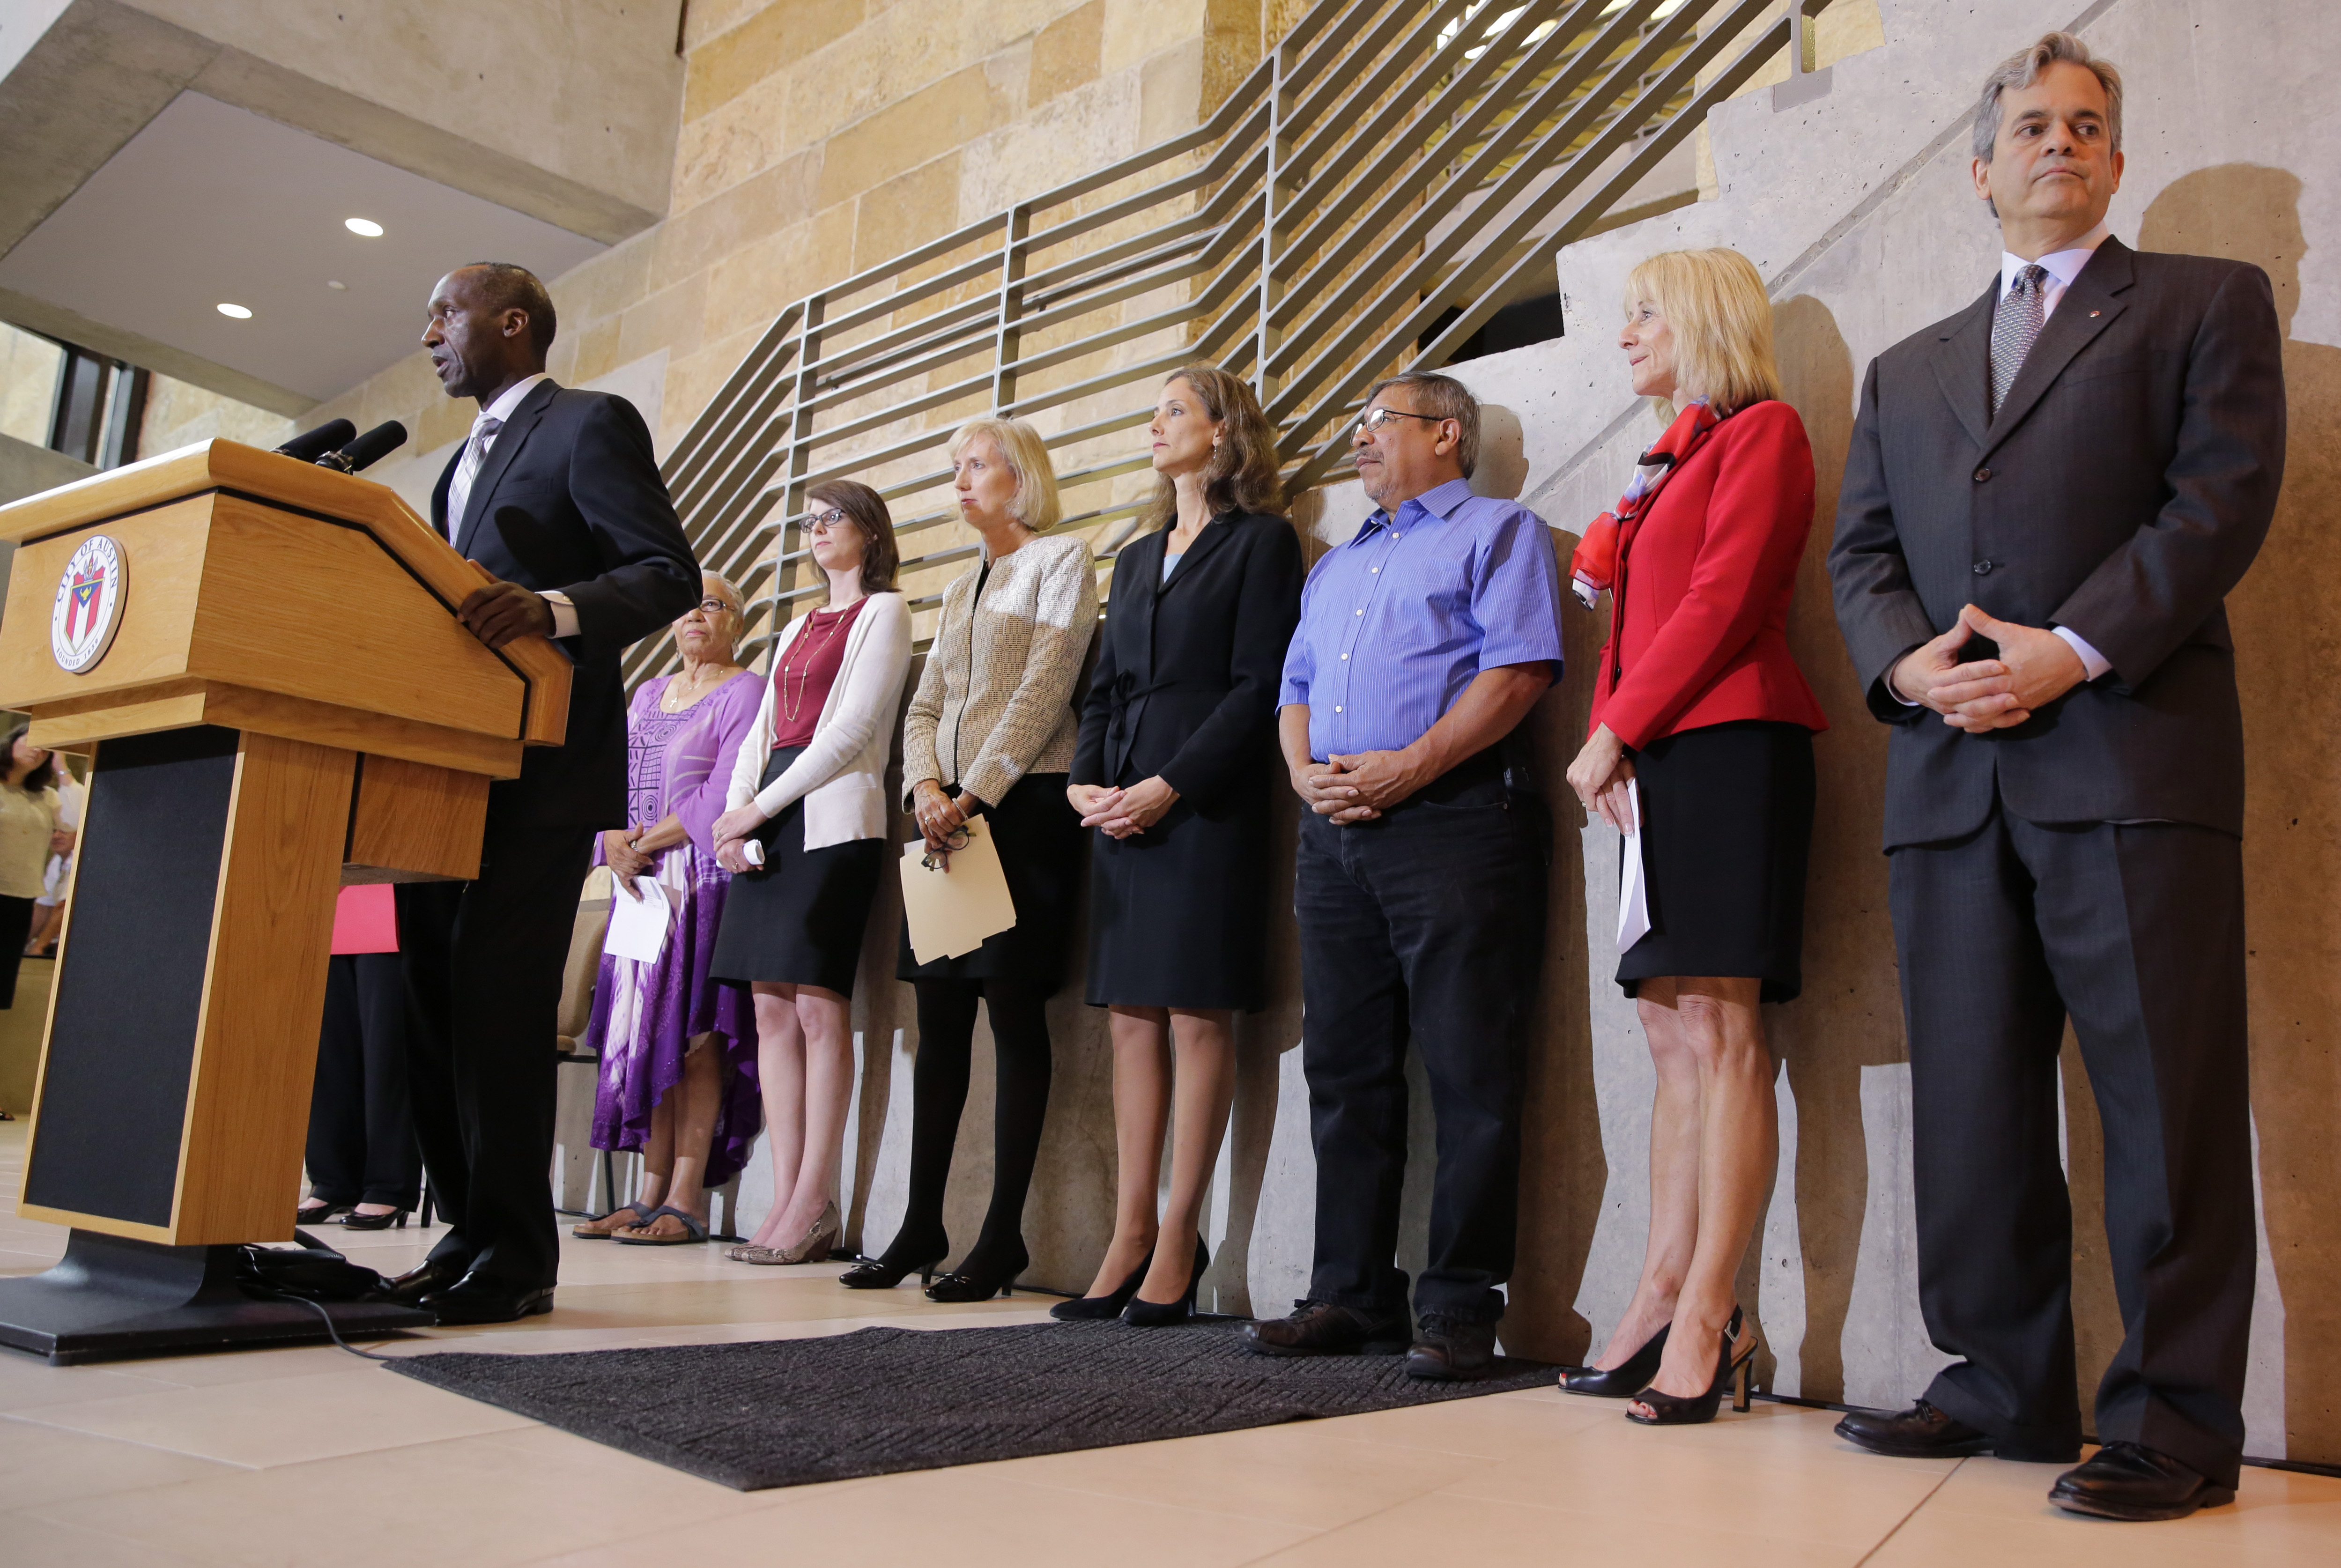 Members of the Austin city council listen to city manager Marc Ott during a news conference at City Hall, on May 13, 2015, in Austin, Texas.